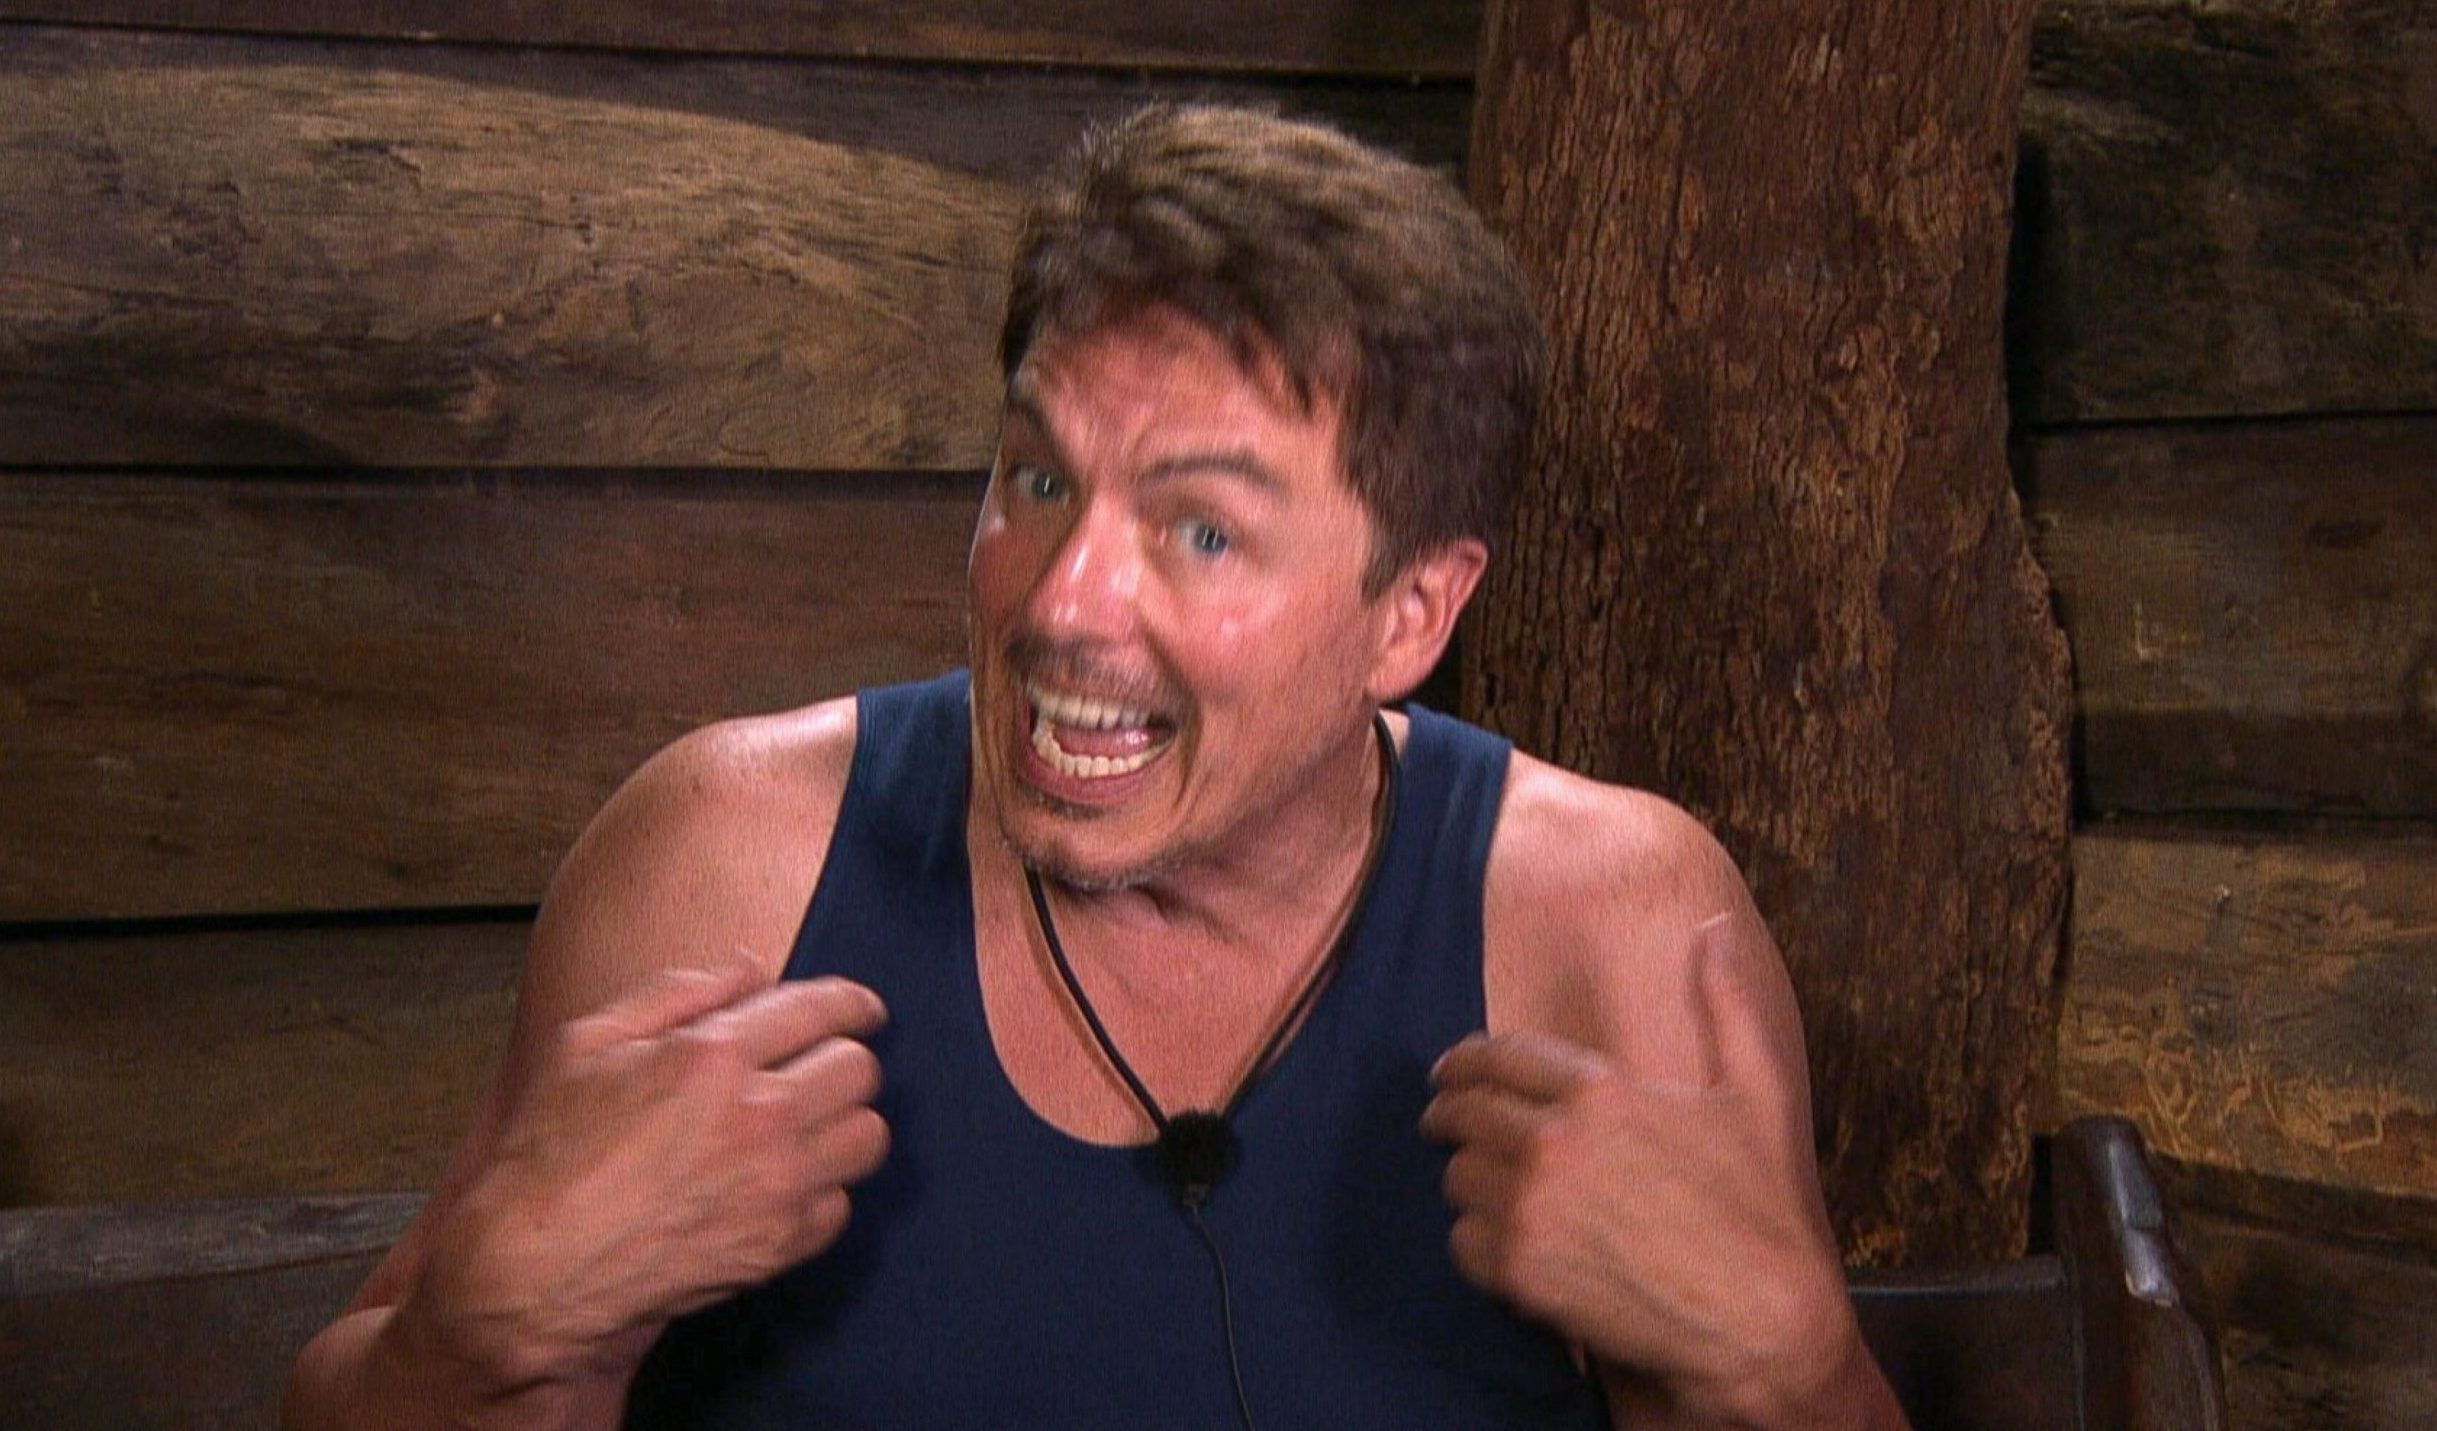 STRICT EMBARGO - NOT TO BE USED BEFORE 22:00 GMT, 28 NOV 2018 - EDITORIAL USE ONLY Mandatory Credit: Photo by ITV/REX (10001287fj) Nick Gets Knickered - John Barrowman 'I'm a Celebrity... Get Me Out of Here!' TV Show, Series 18, Australia - 28 Nov 2018